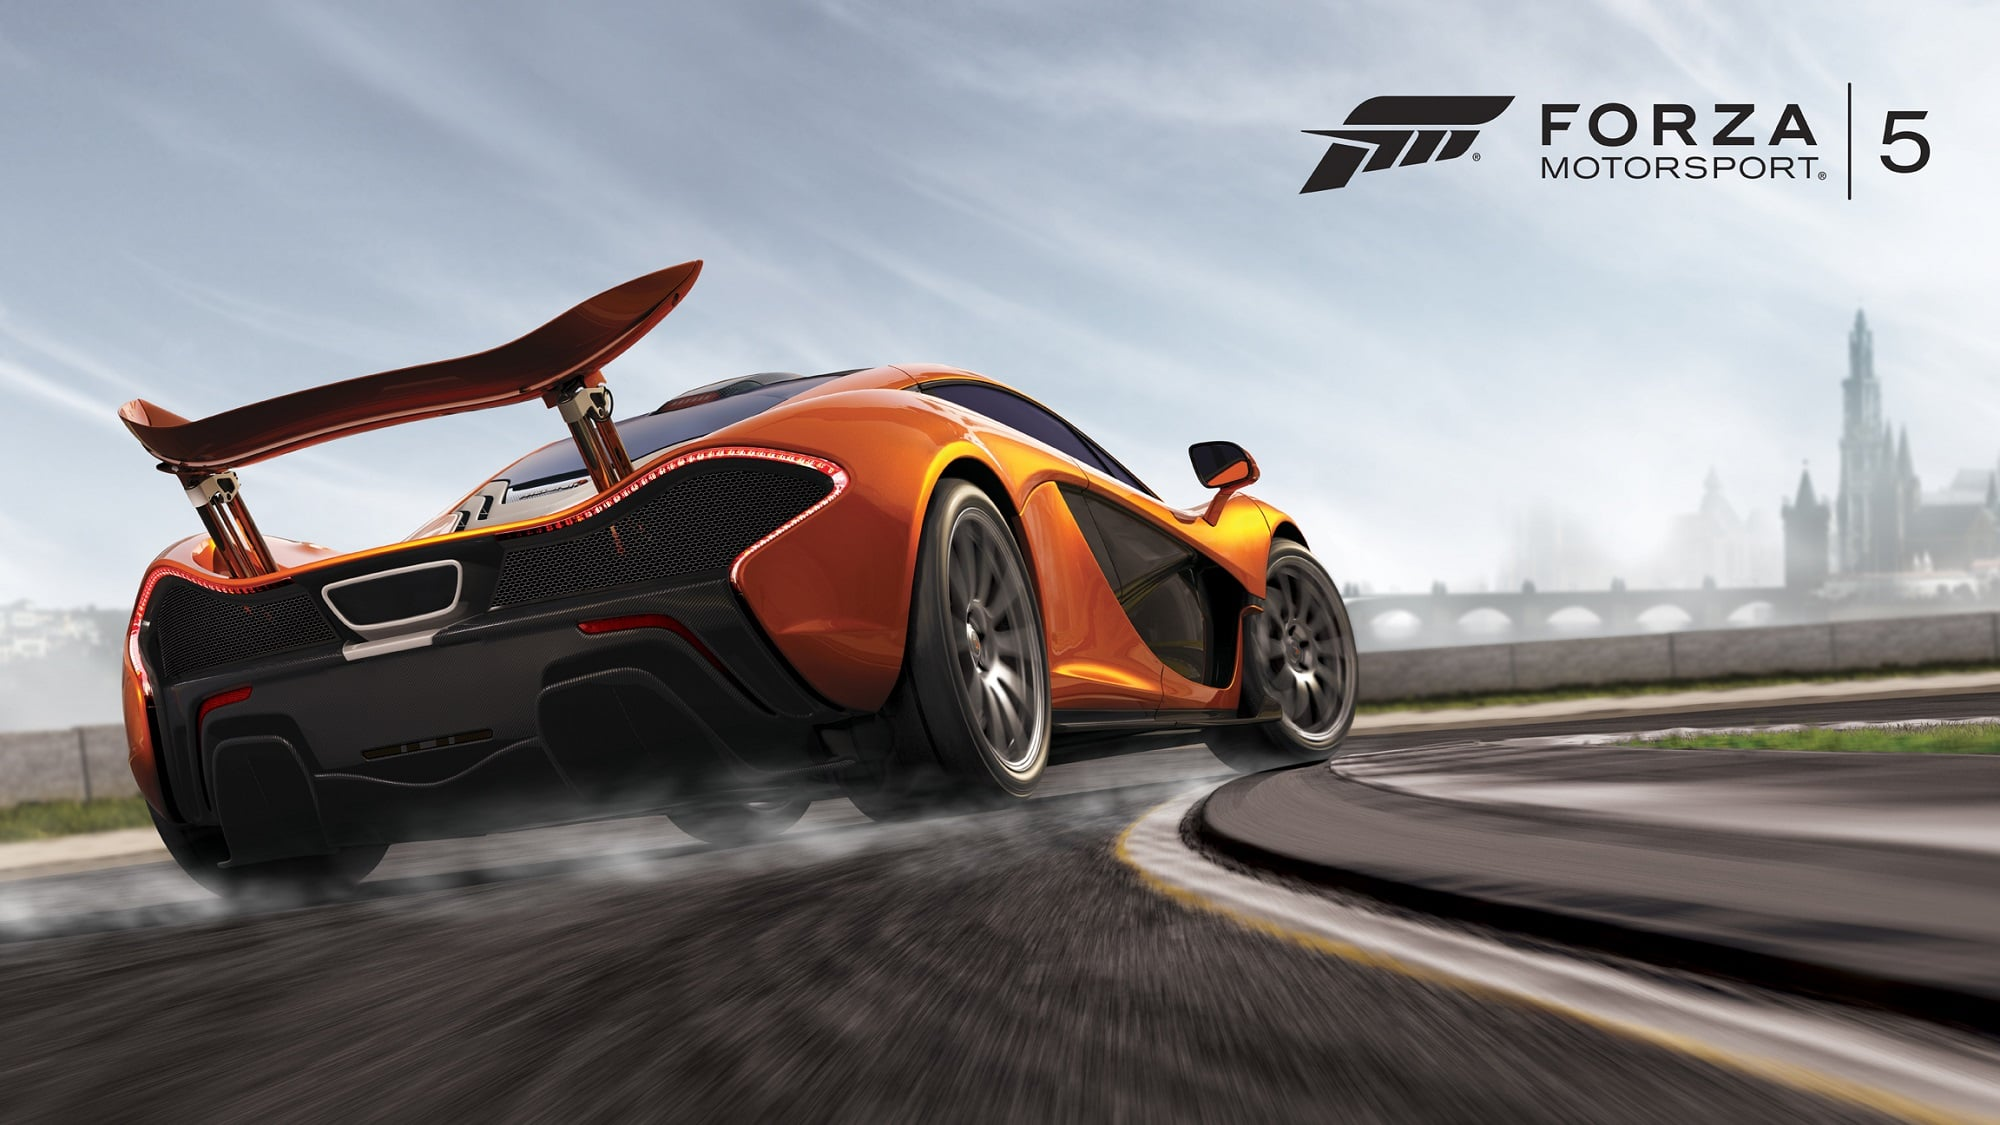 UPDATE] Forza Motorsport 5 Delisted from Xbox Games Store